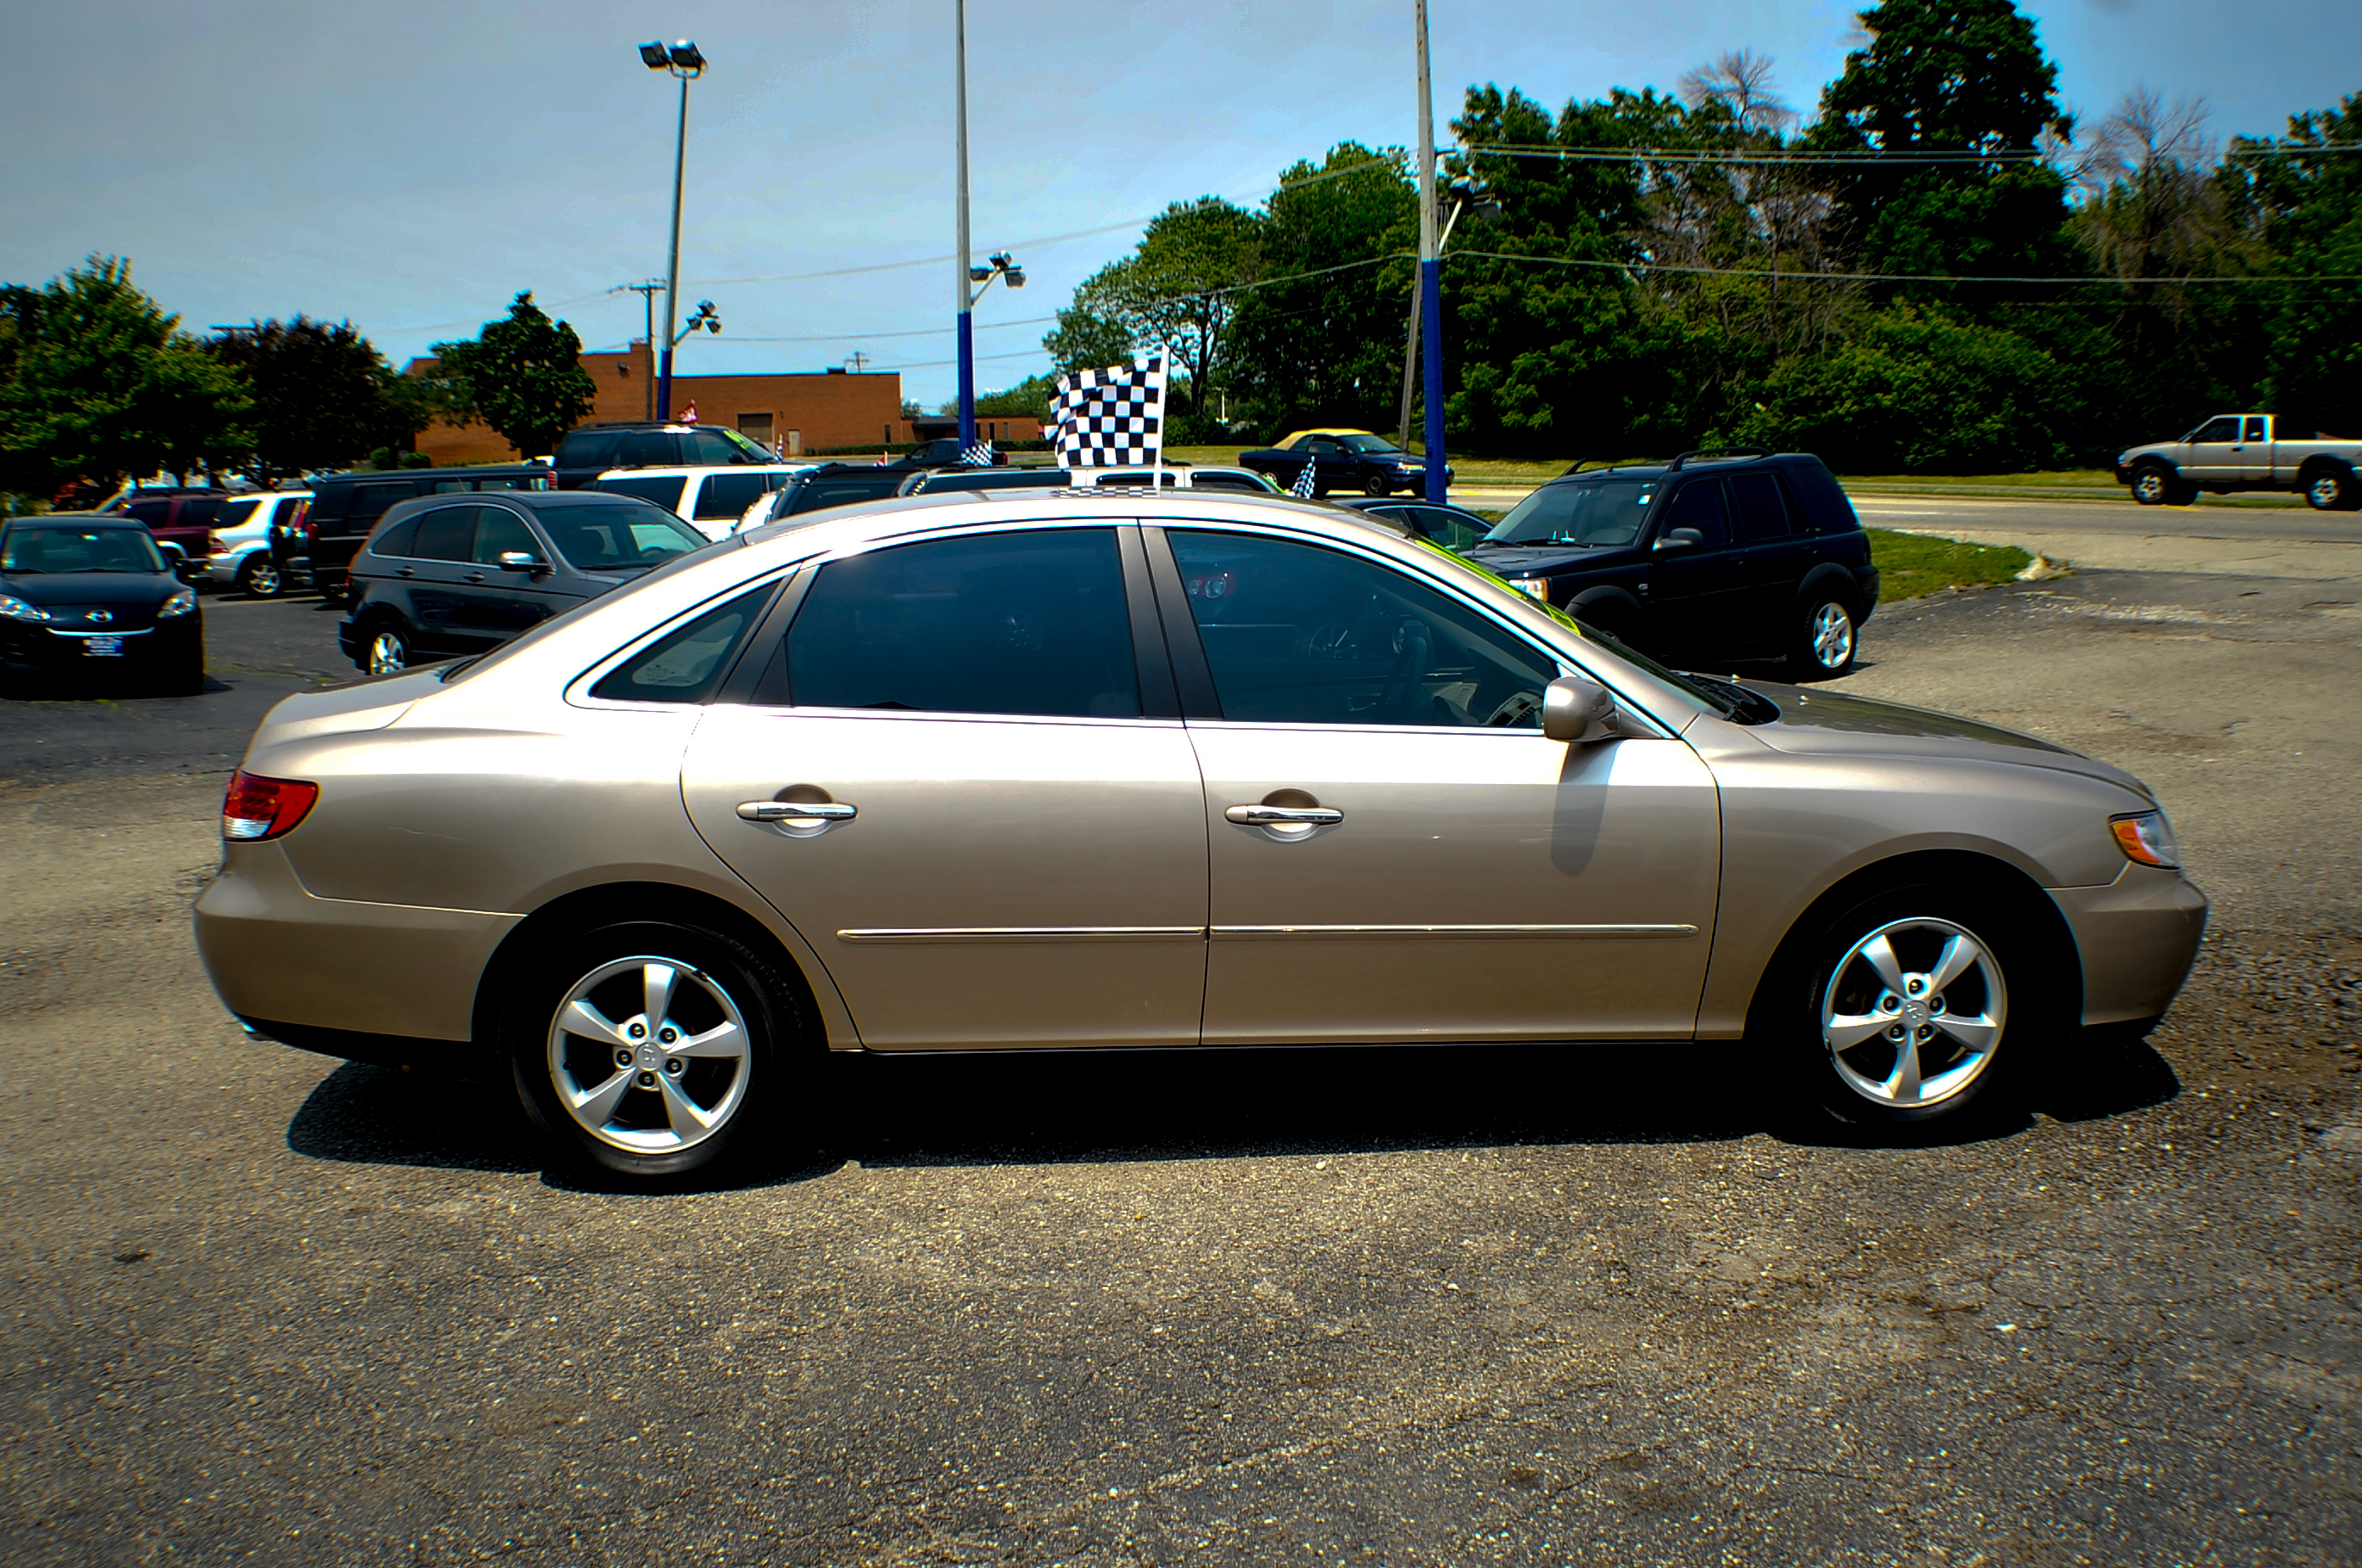 2006 Hyundai Azera Sand V6 Sedan Used Car Sale Lindenhurst Gurnee